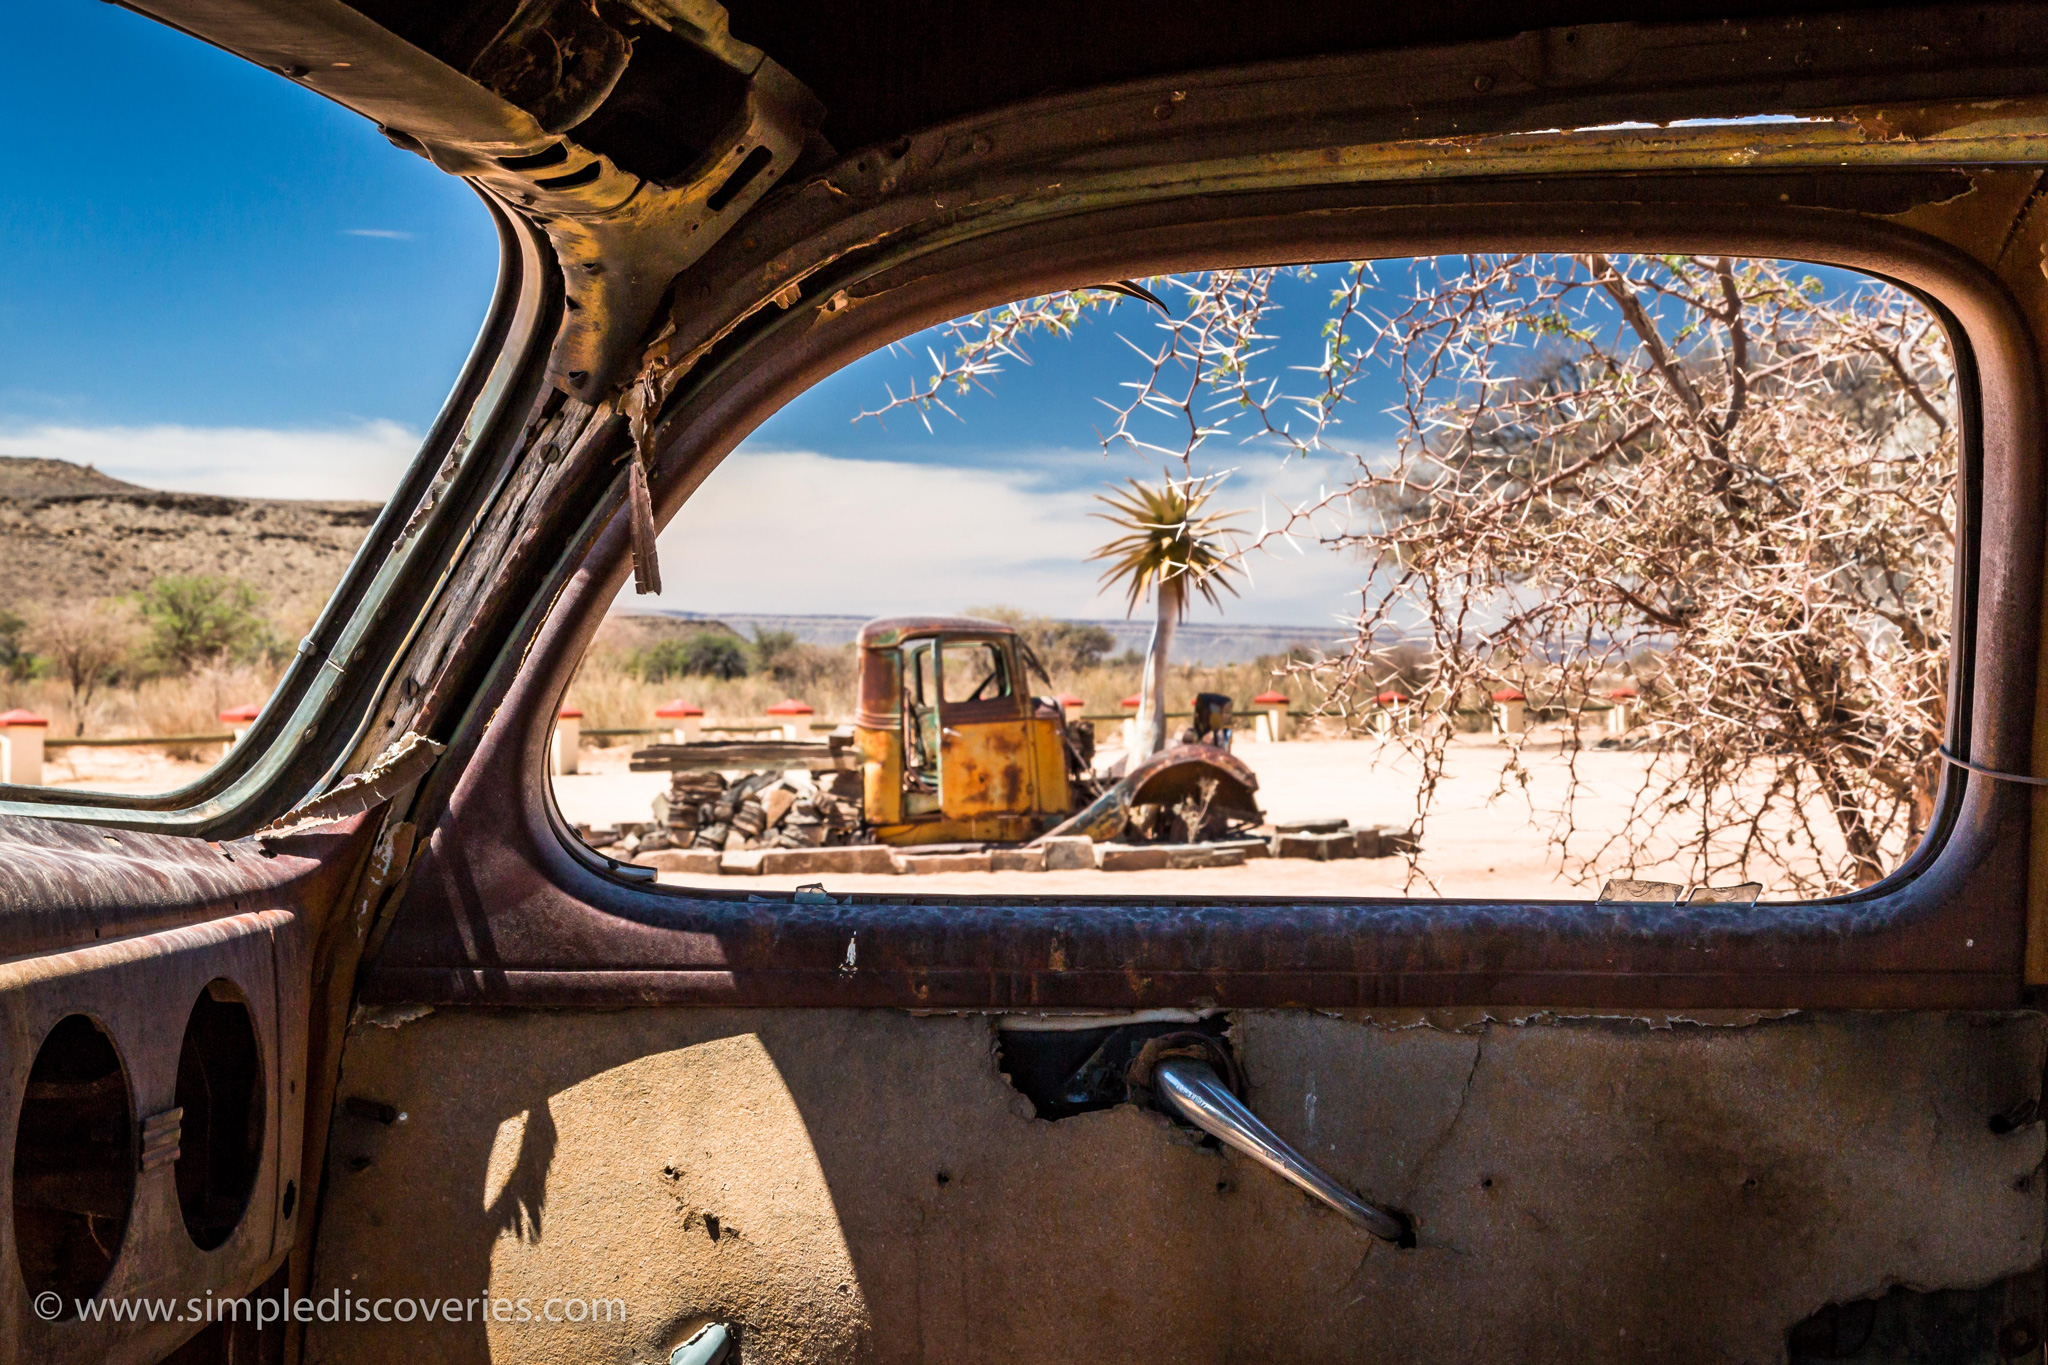 namibia_derelict_car_window